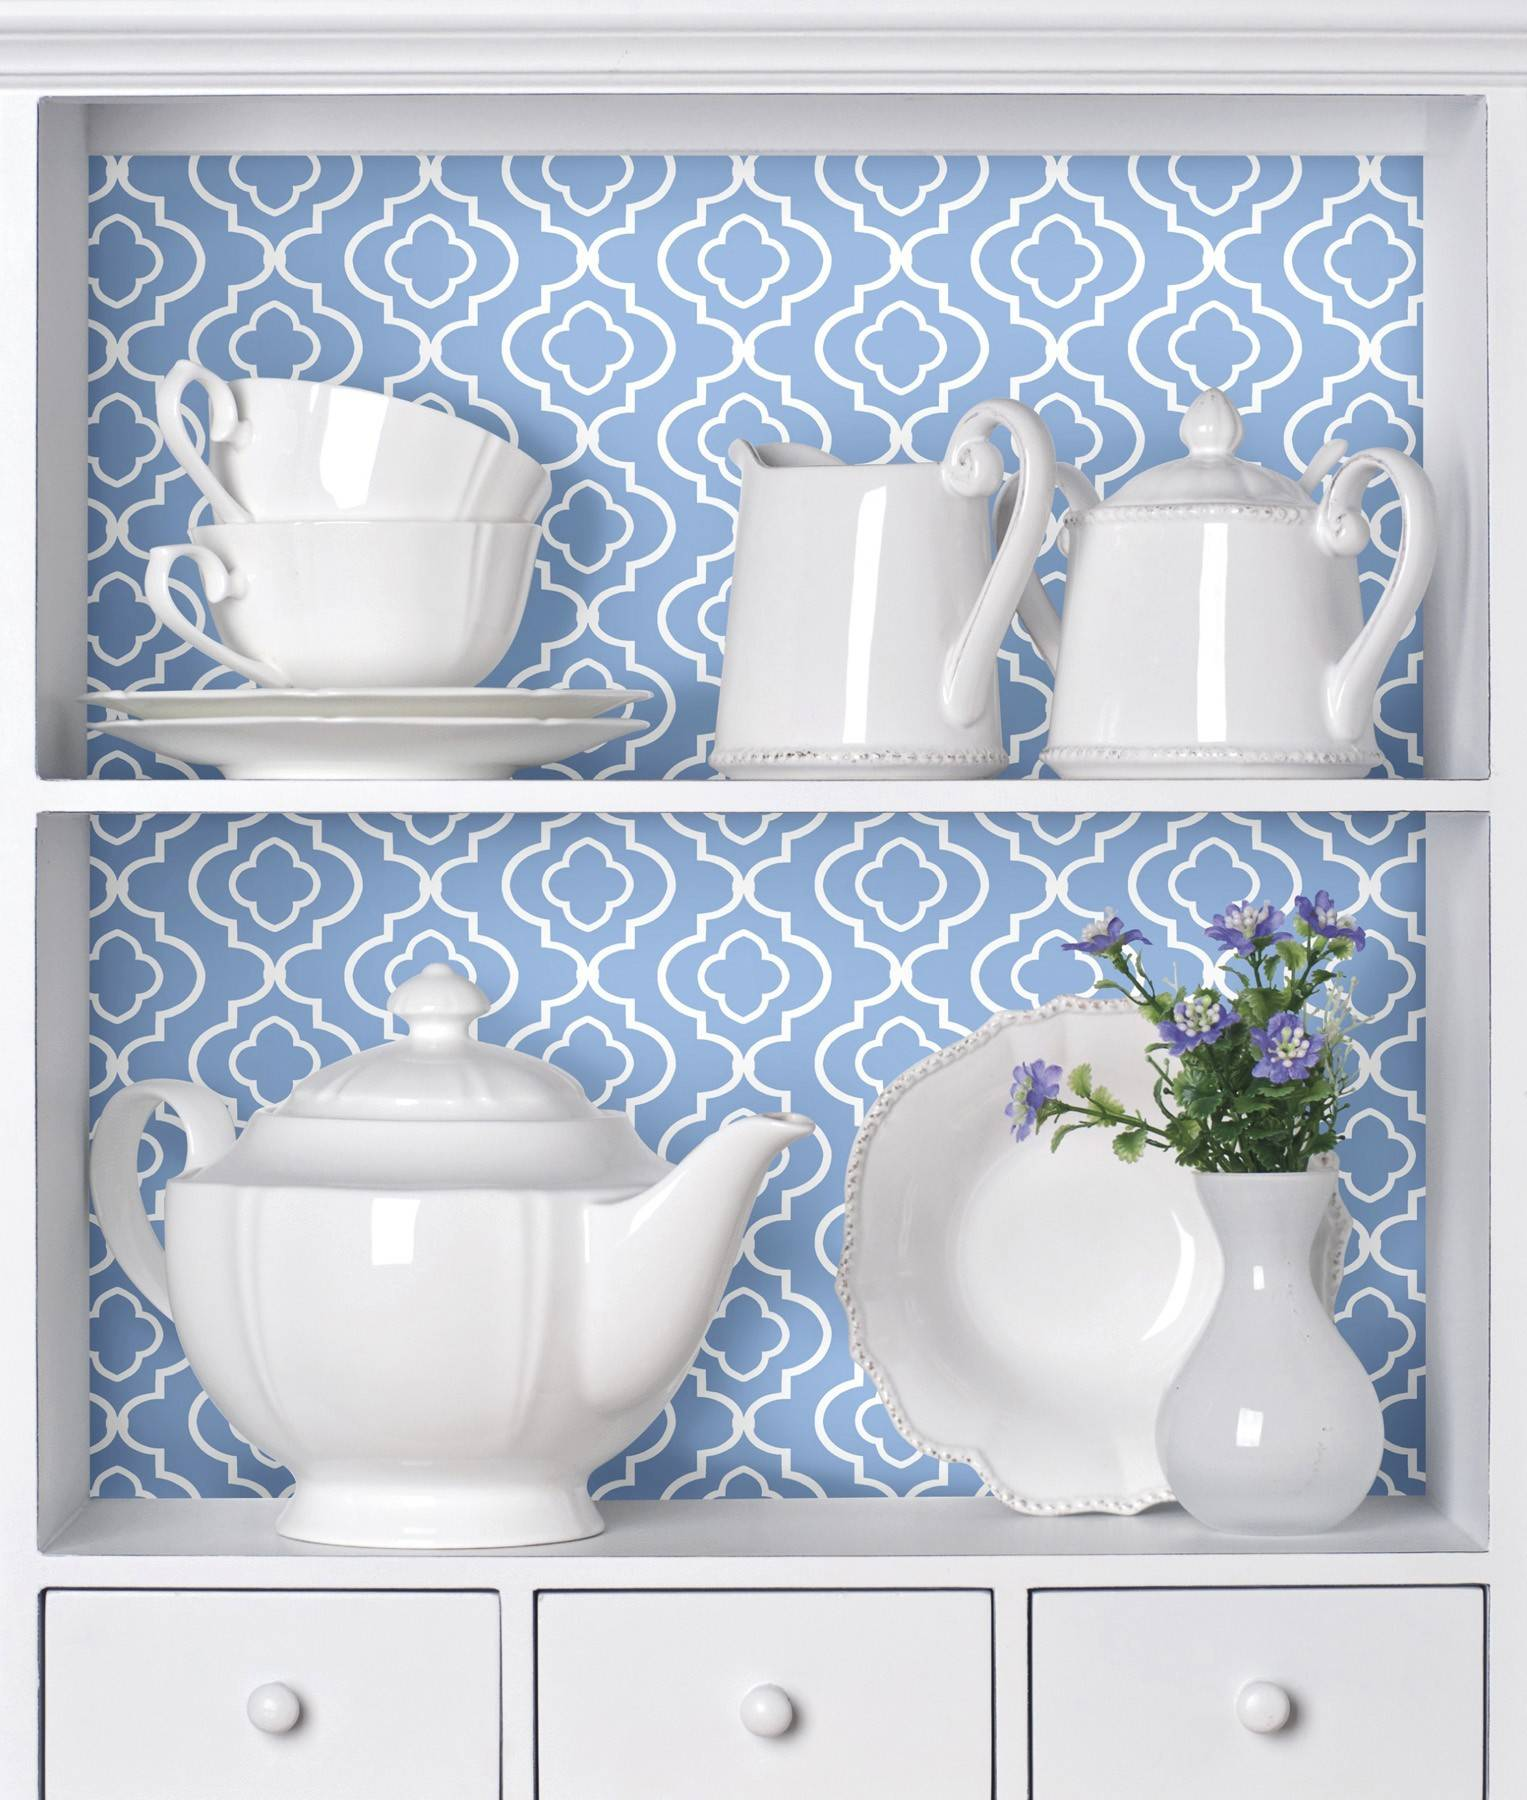 Wallpaper in a display cabinet can serve as a stunning background for basic white dishes.